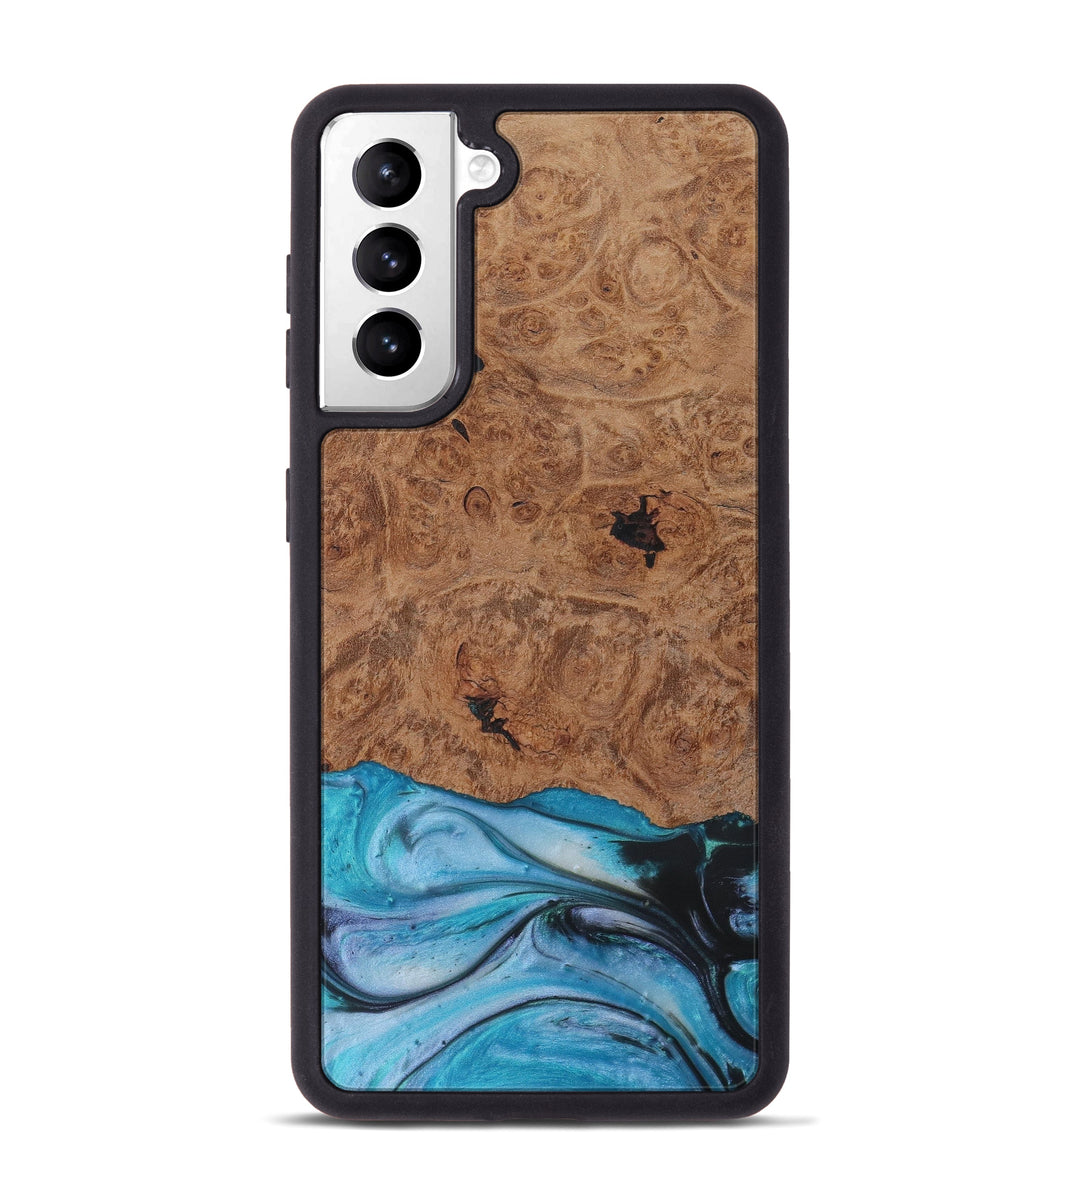 Galaxy S21 Wood+Resin Phone Case - Chlo (Light Blue, 423351)